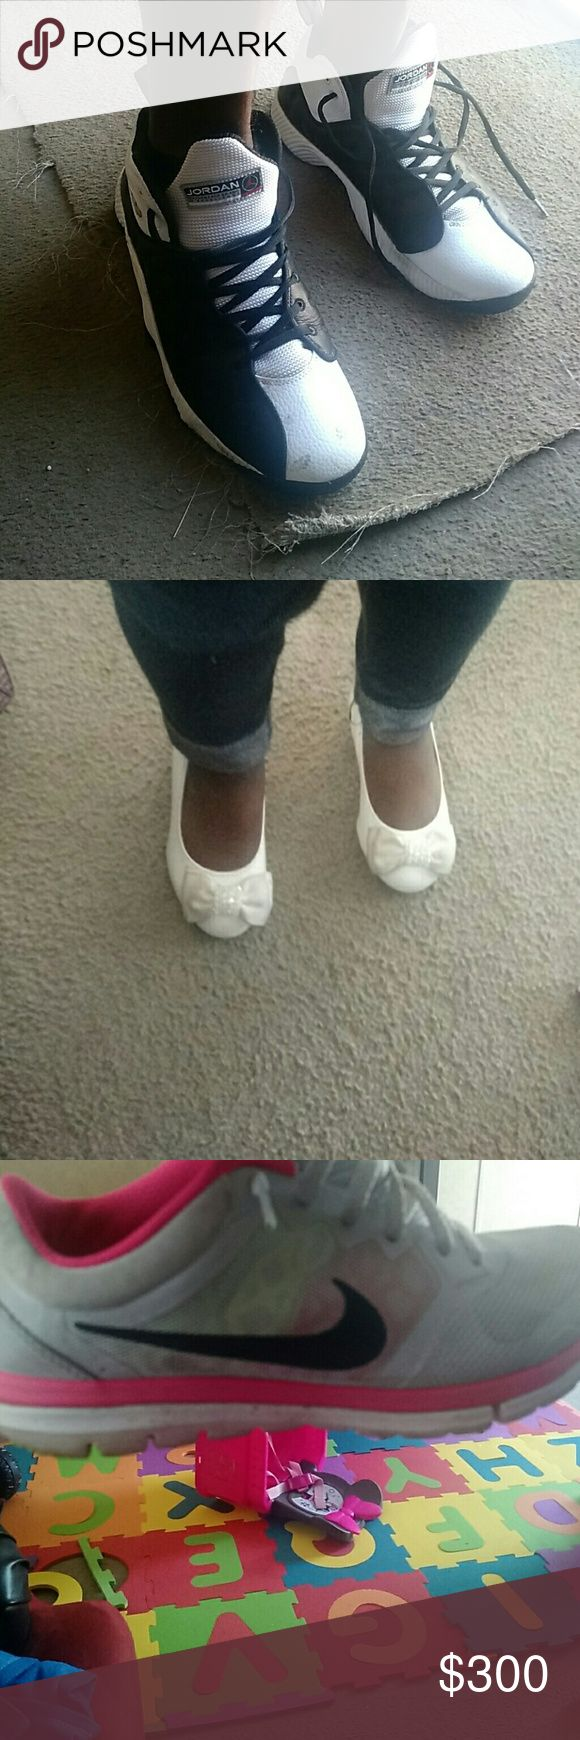 Daddy, baby, mom Jordan size 12 High heel size 7 kids Nike size 6.5 Uggs size 6 Shoes Sneakers